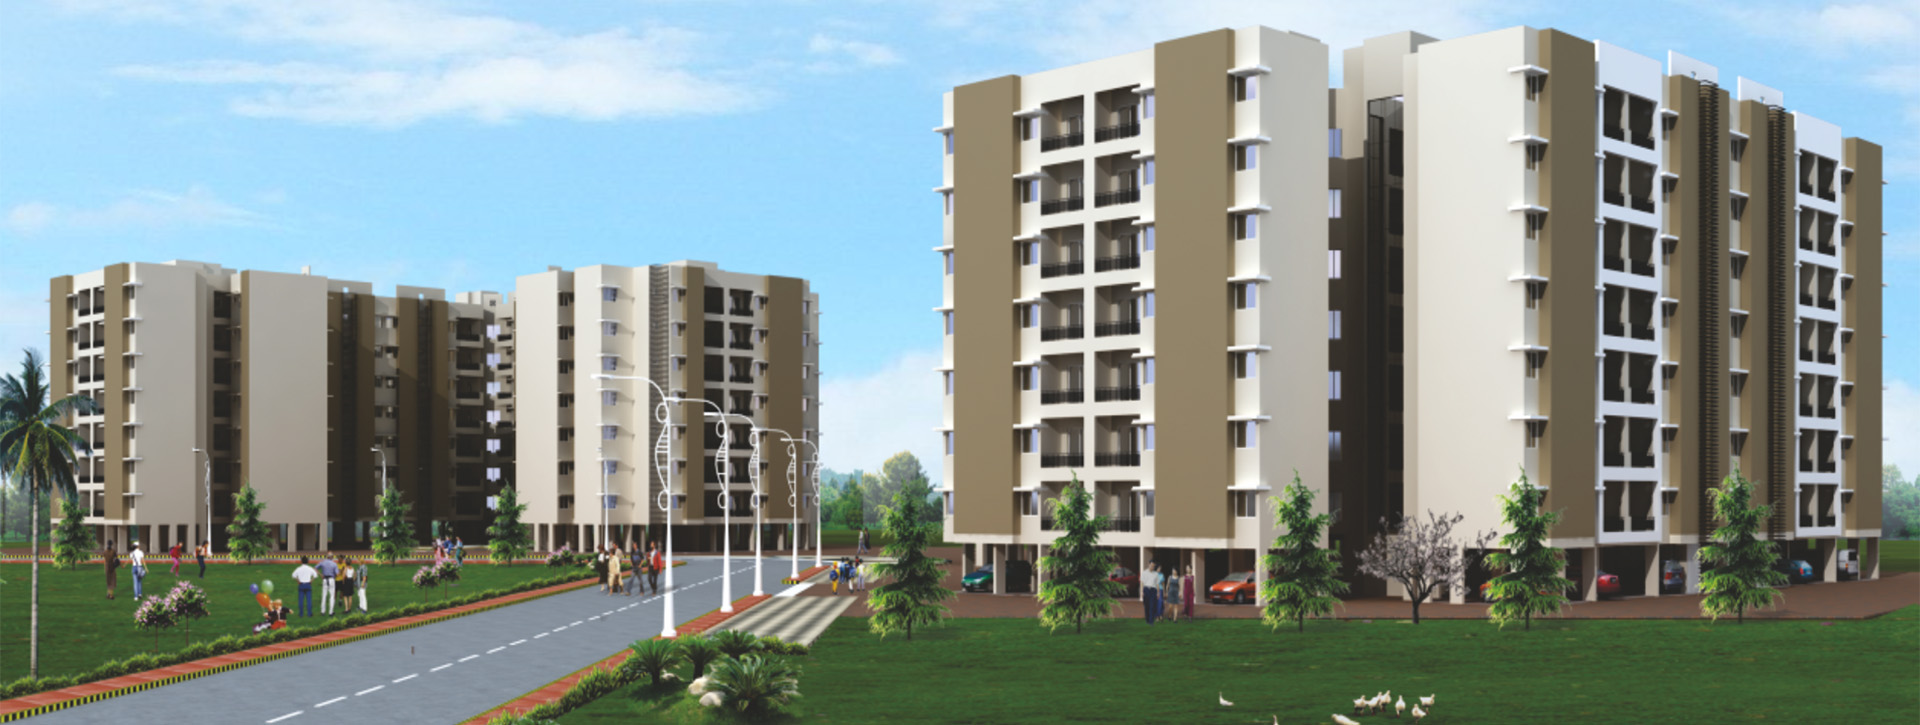 2,3 BHK Apartment in Daffodil Highs - The Empyrean Nagpur